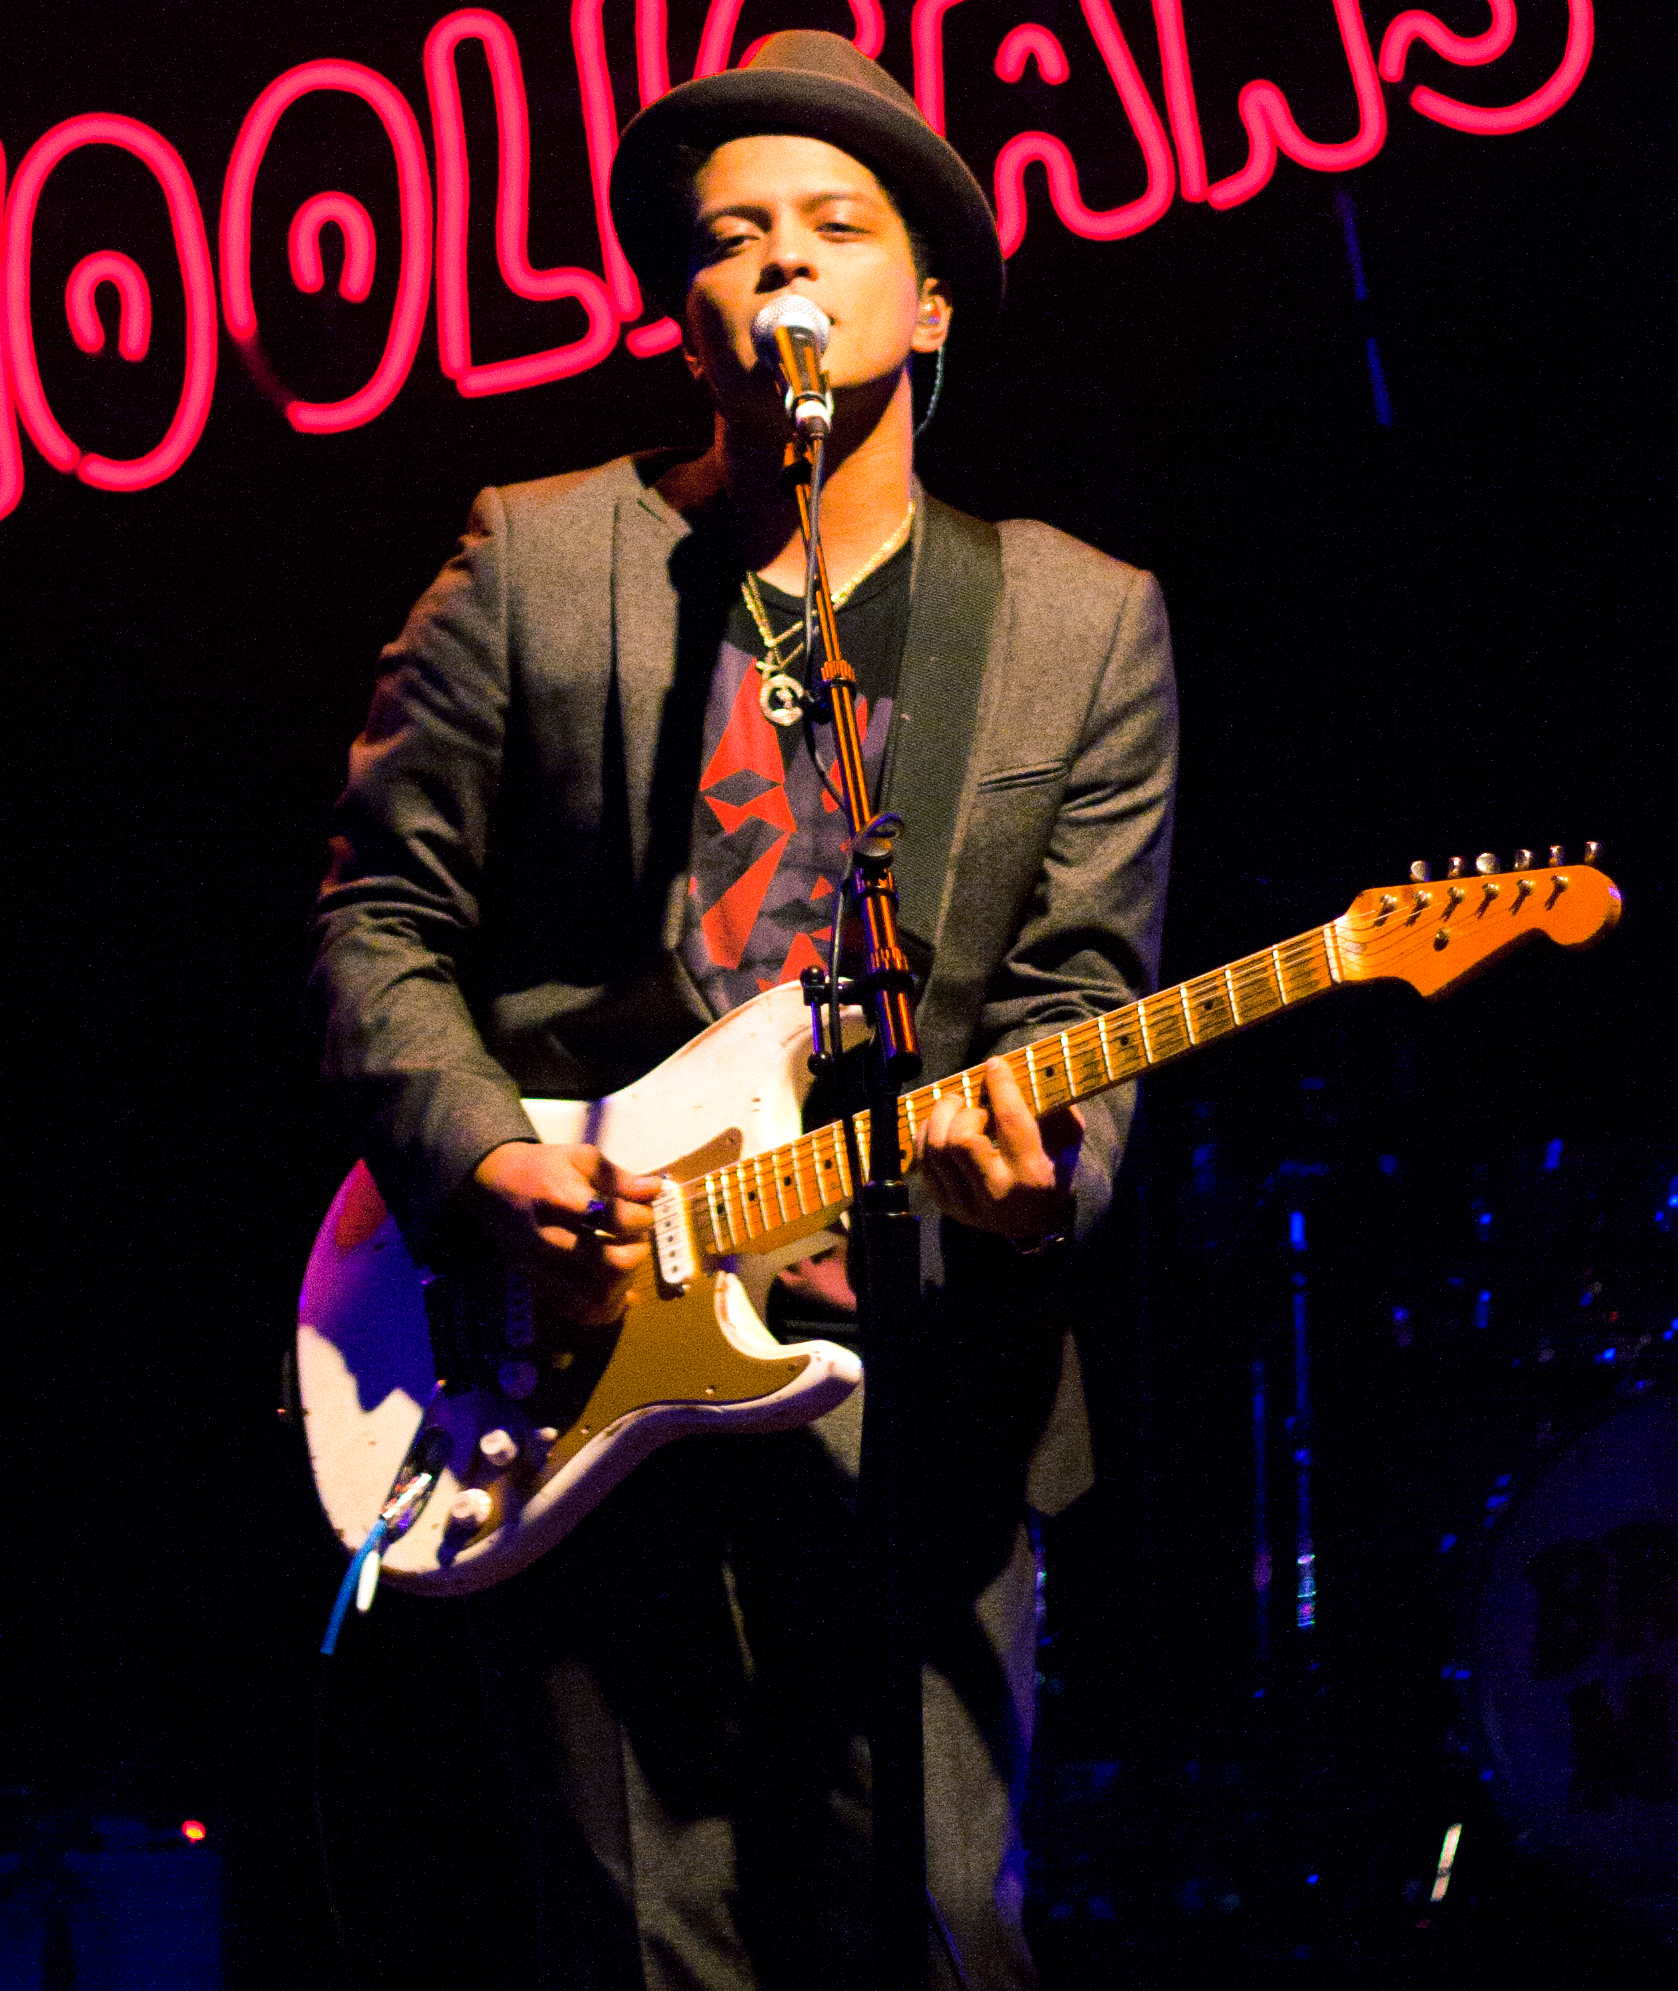 http://upload.wikimedia.org/wikipedia/commons/a/af/Bruno_Mars_2010.jpg